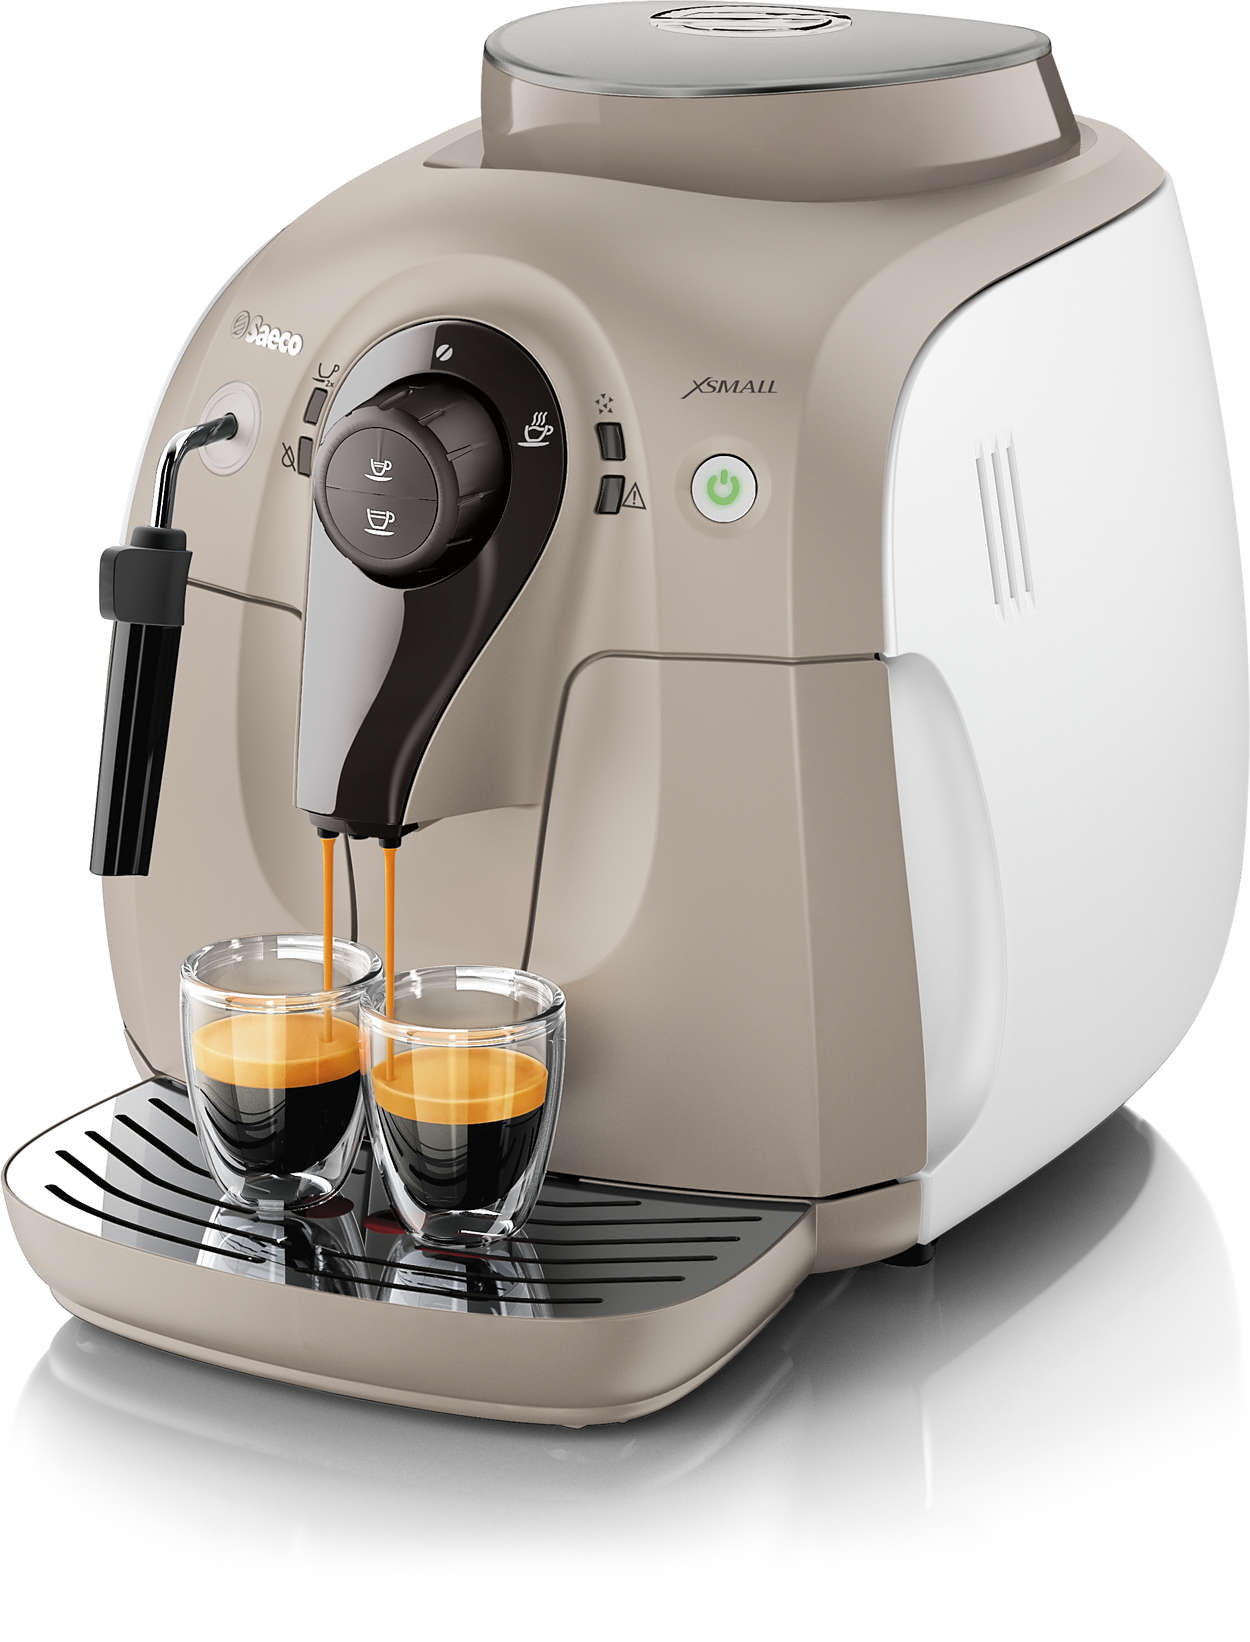 ... Saeco Coffee Machines Repairs ~ Xsmall super automatic espresso machine  hd saeco ...